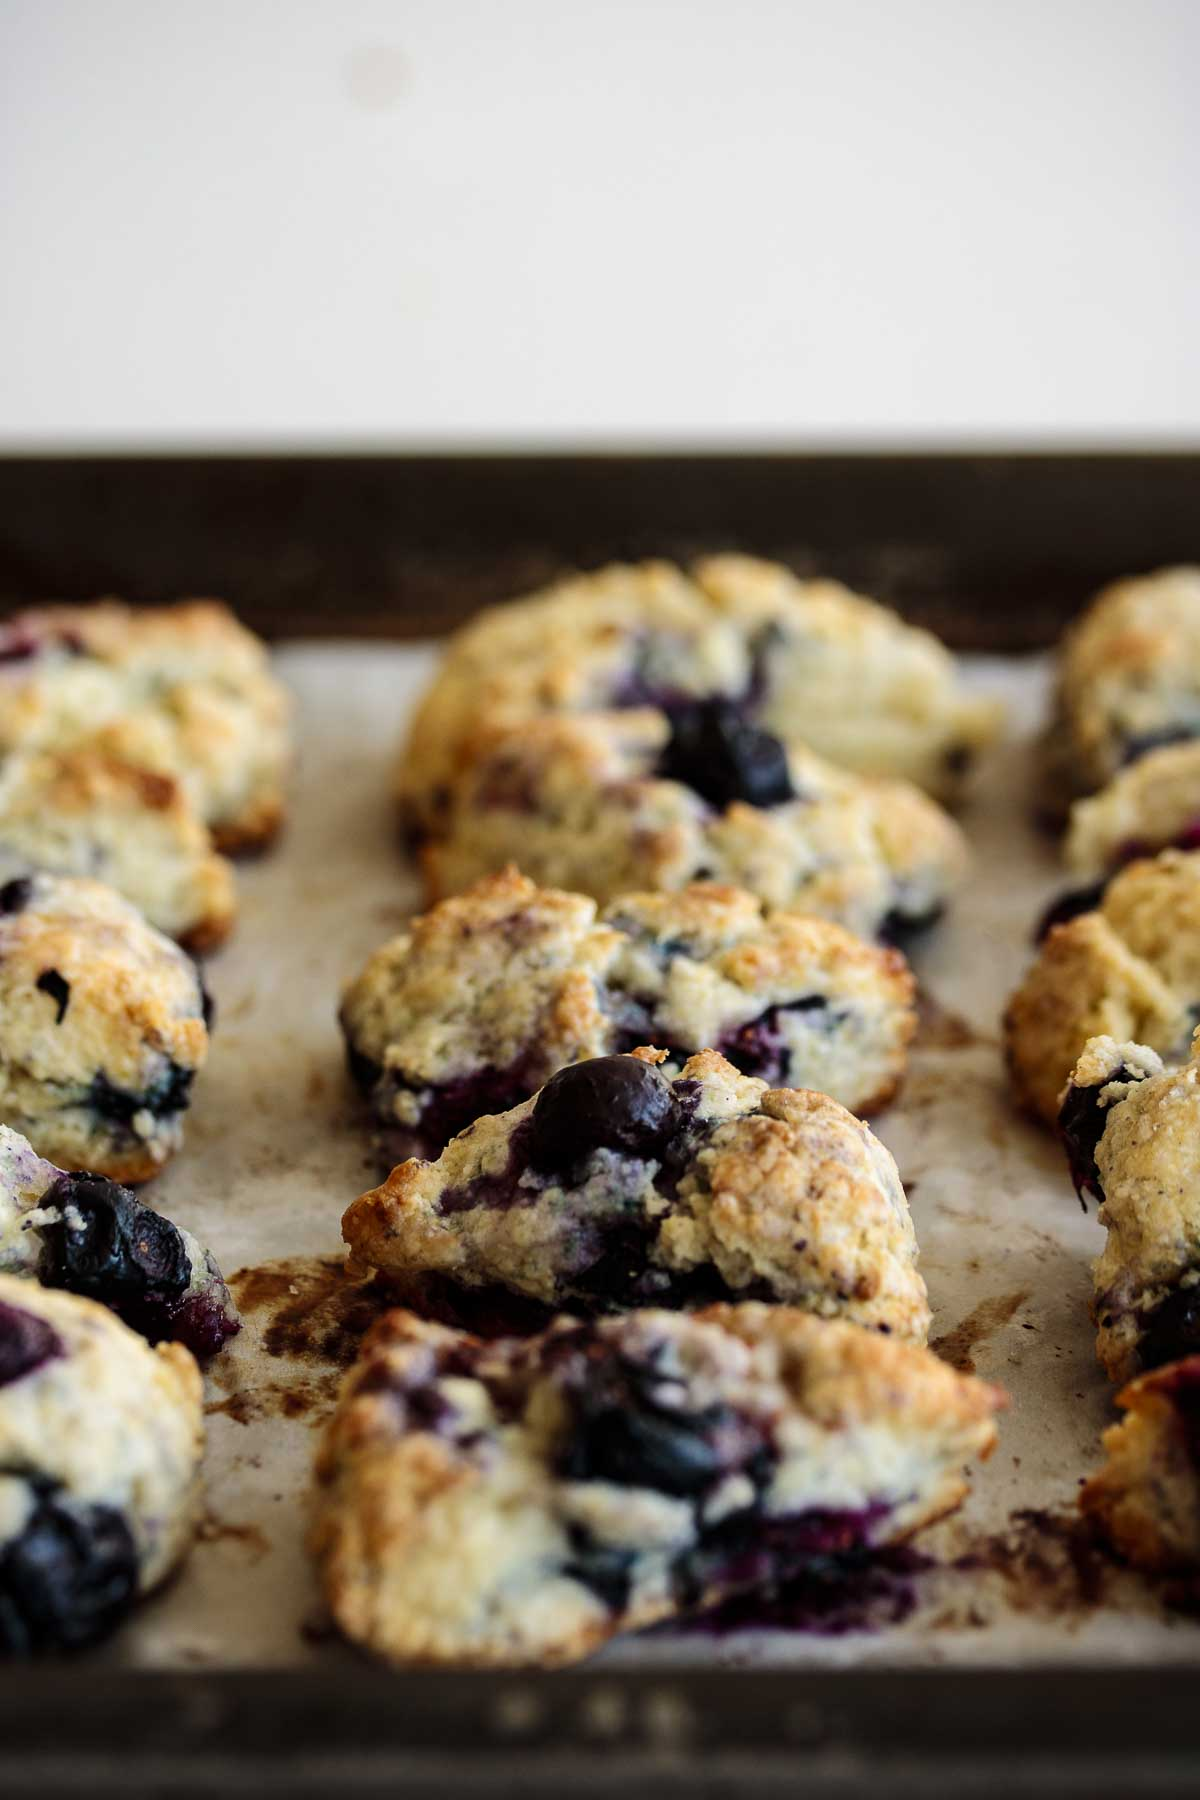 Starbucks Blueberry Scones after baked, on a baking tray.